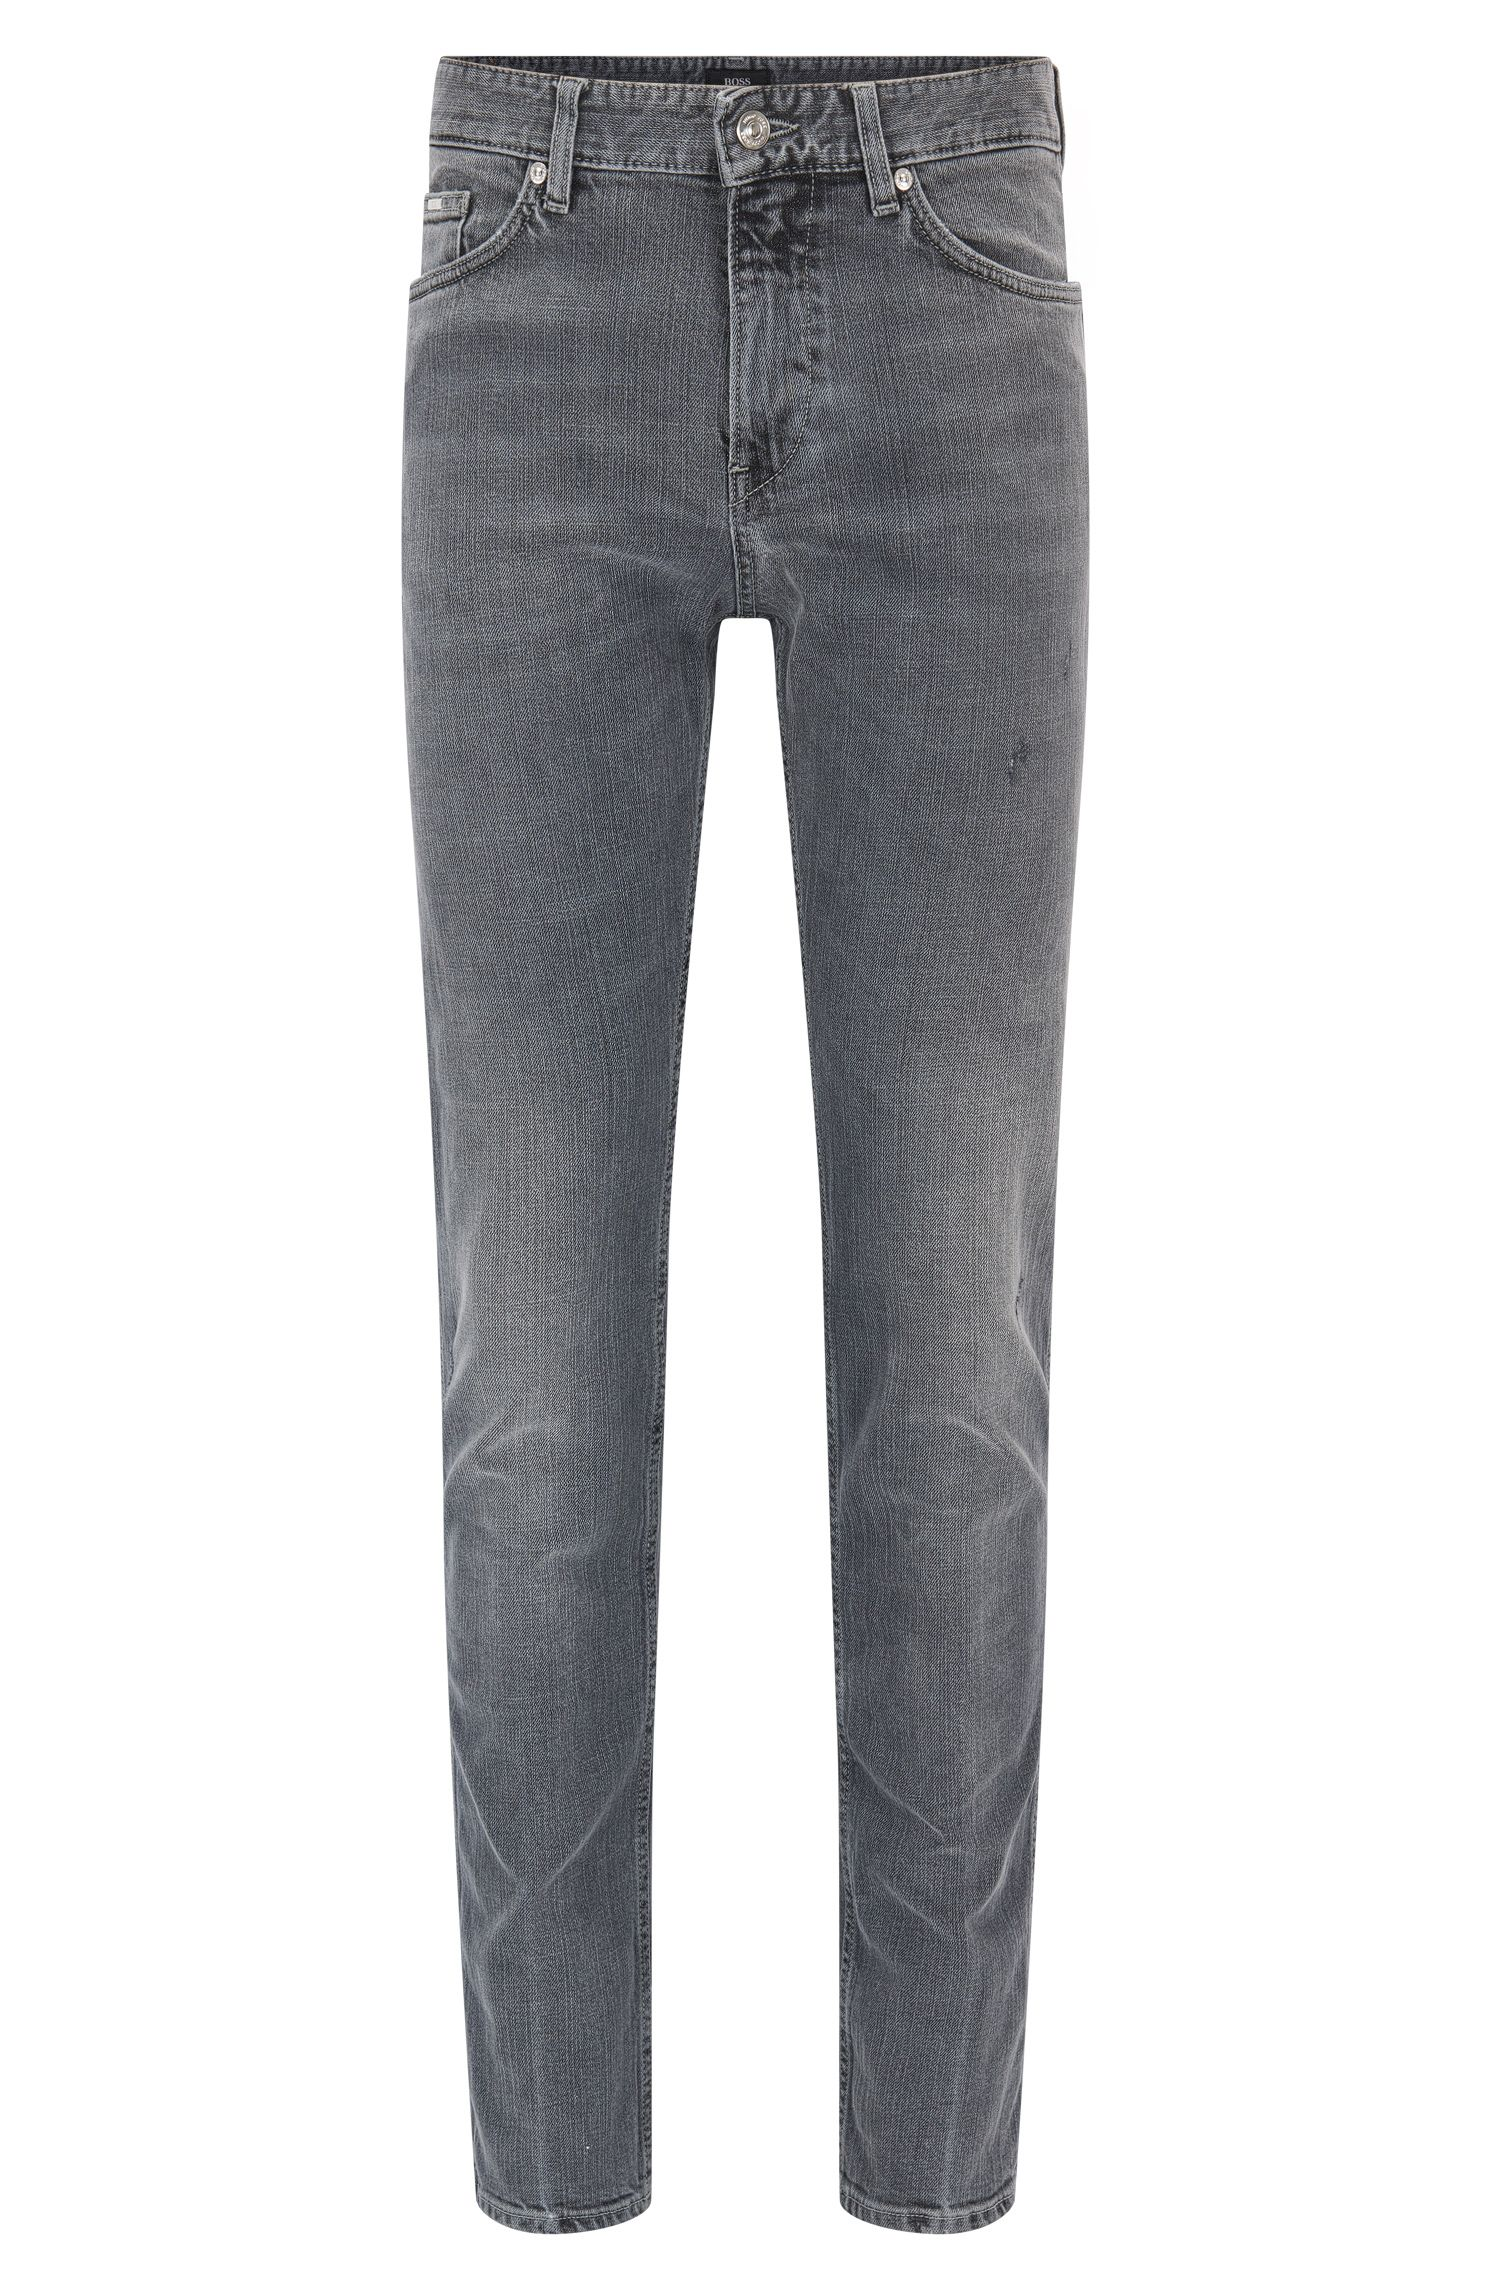 Jeans Slim Fit en denim stretch à effet gris vintage